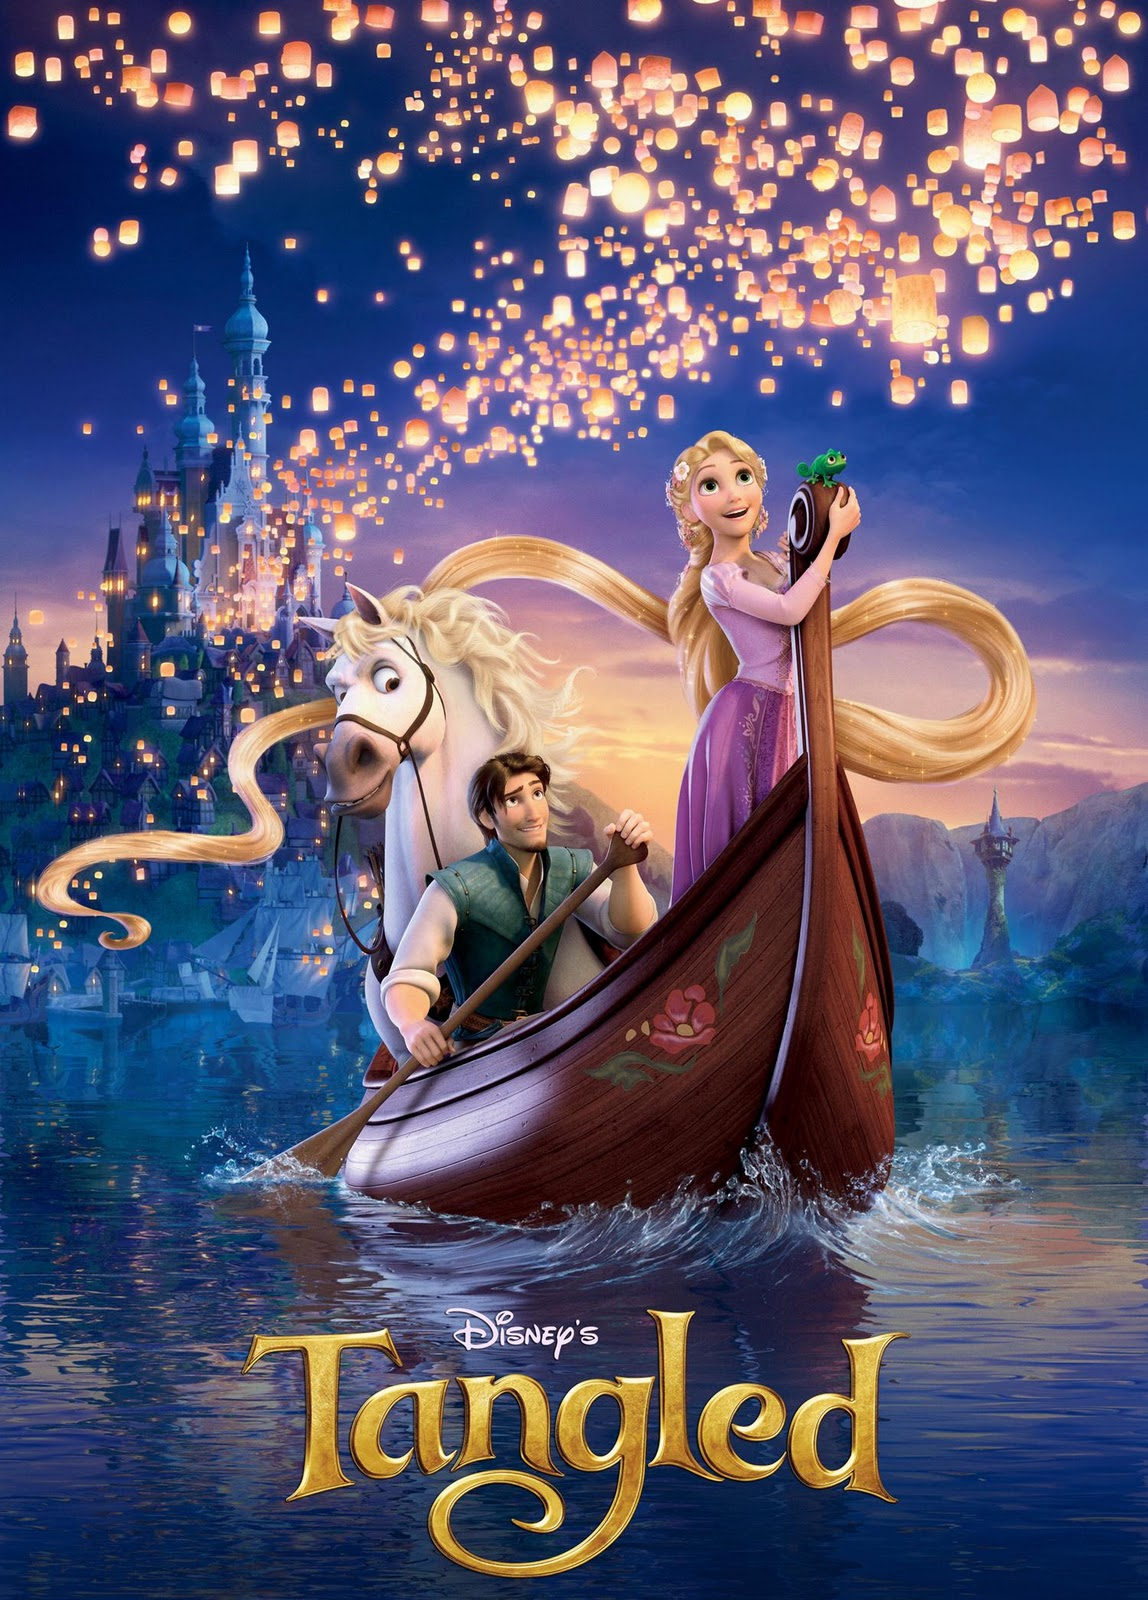 Poster image from Disney's